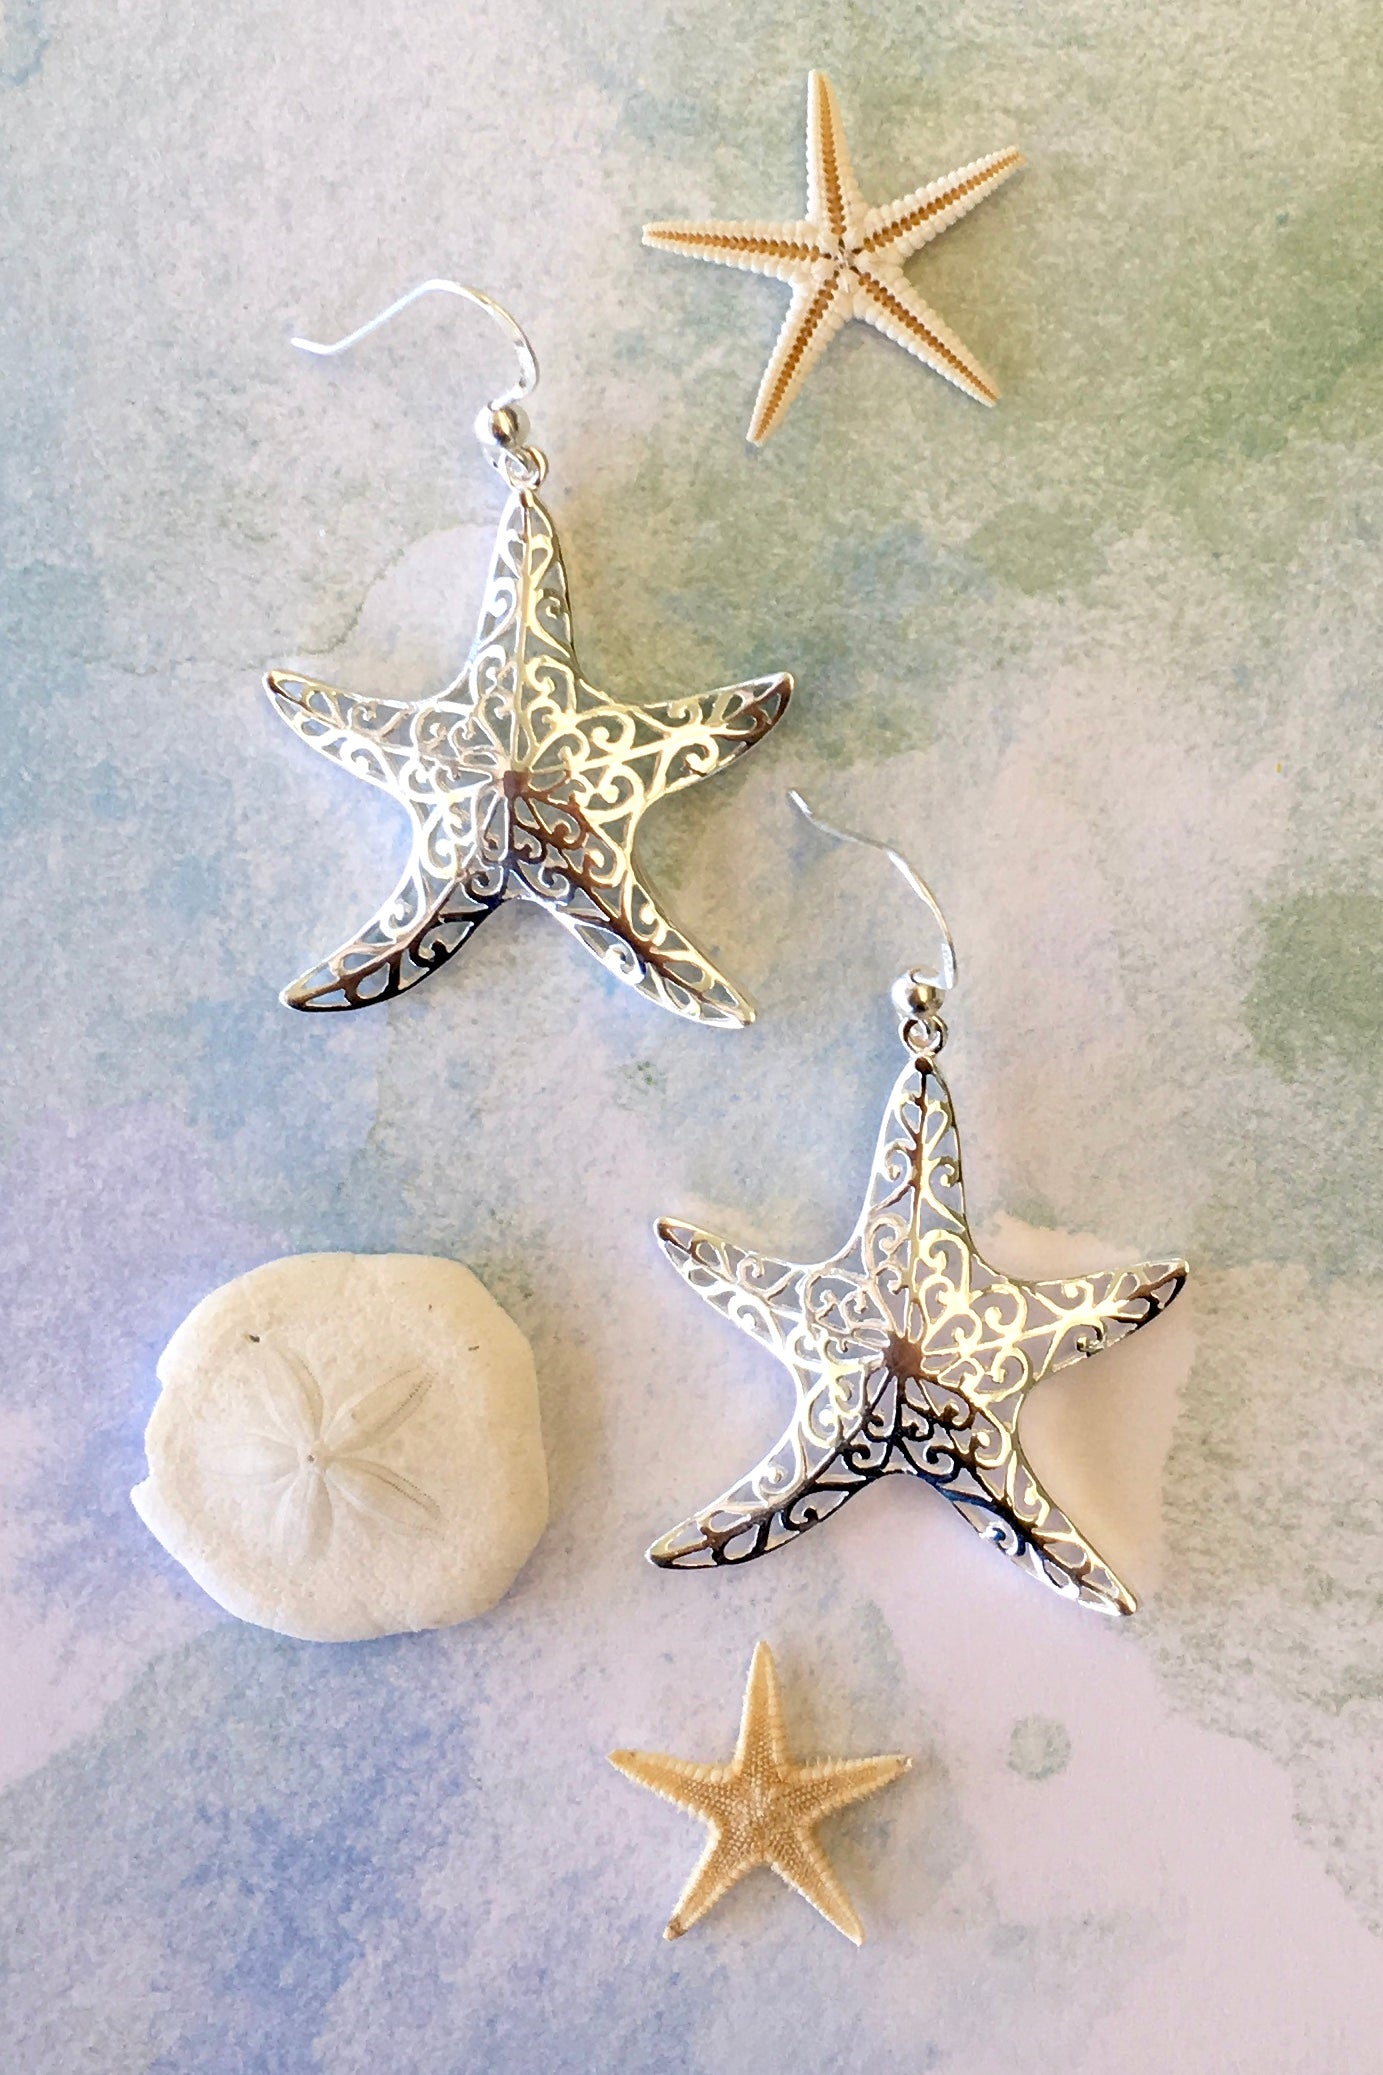 Earrings Cay Star Fish in 925 Silver, earrings in the shape of a silver starfish.